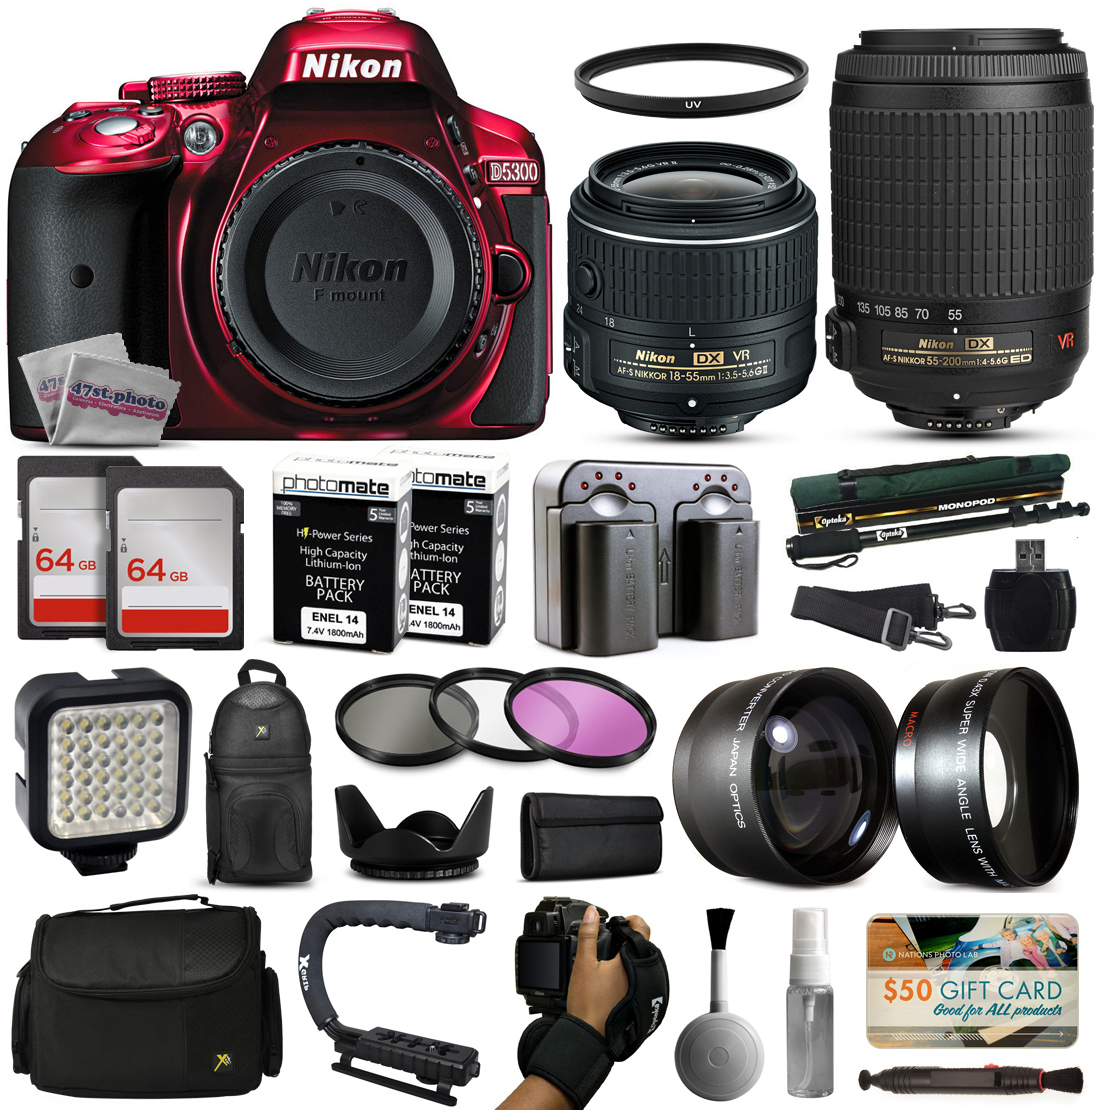 Nikon D5300 Red DSLR Digital Camera with 18-55mm VR II + 55-200mm VR Lens + 128GB Memory + (2) Batteries + Charger + LED Video Light + Backpack + Case + Filters + Auxiliary Lenses + $50 Gift Card